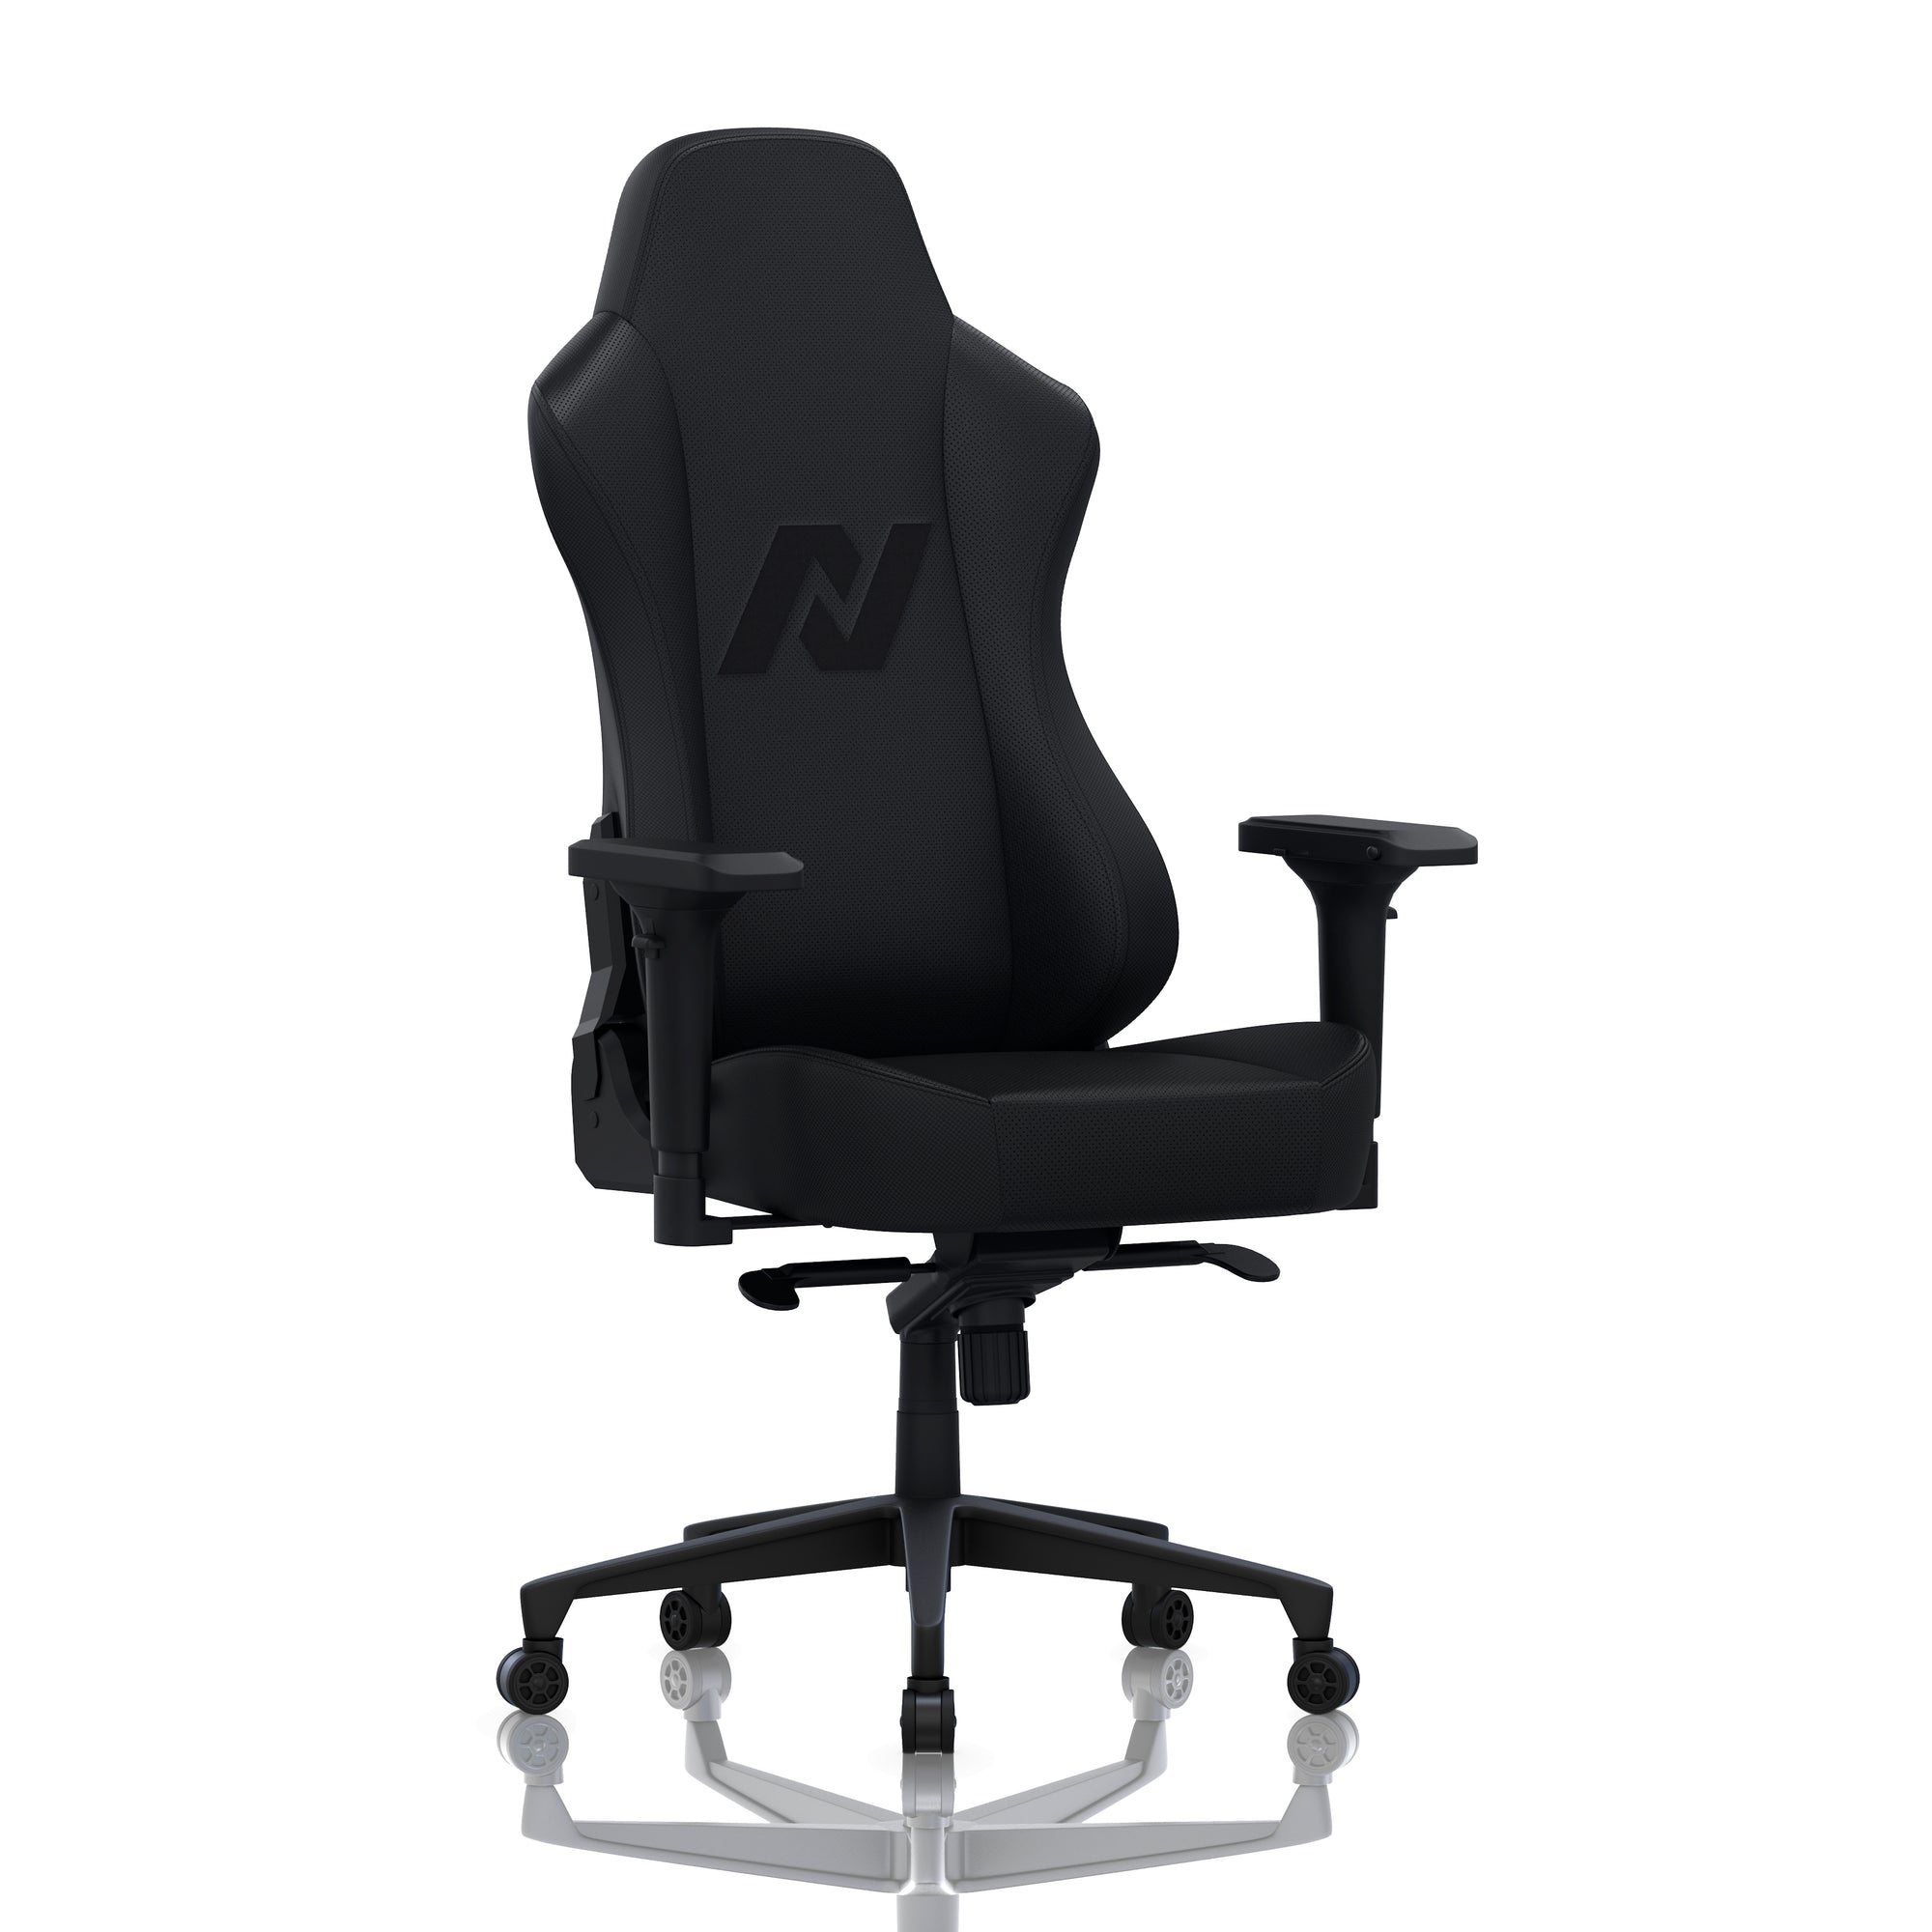 ATOM Nucleus Executive Office Gaming Chair Perforated Leather - Slight turn right view